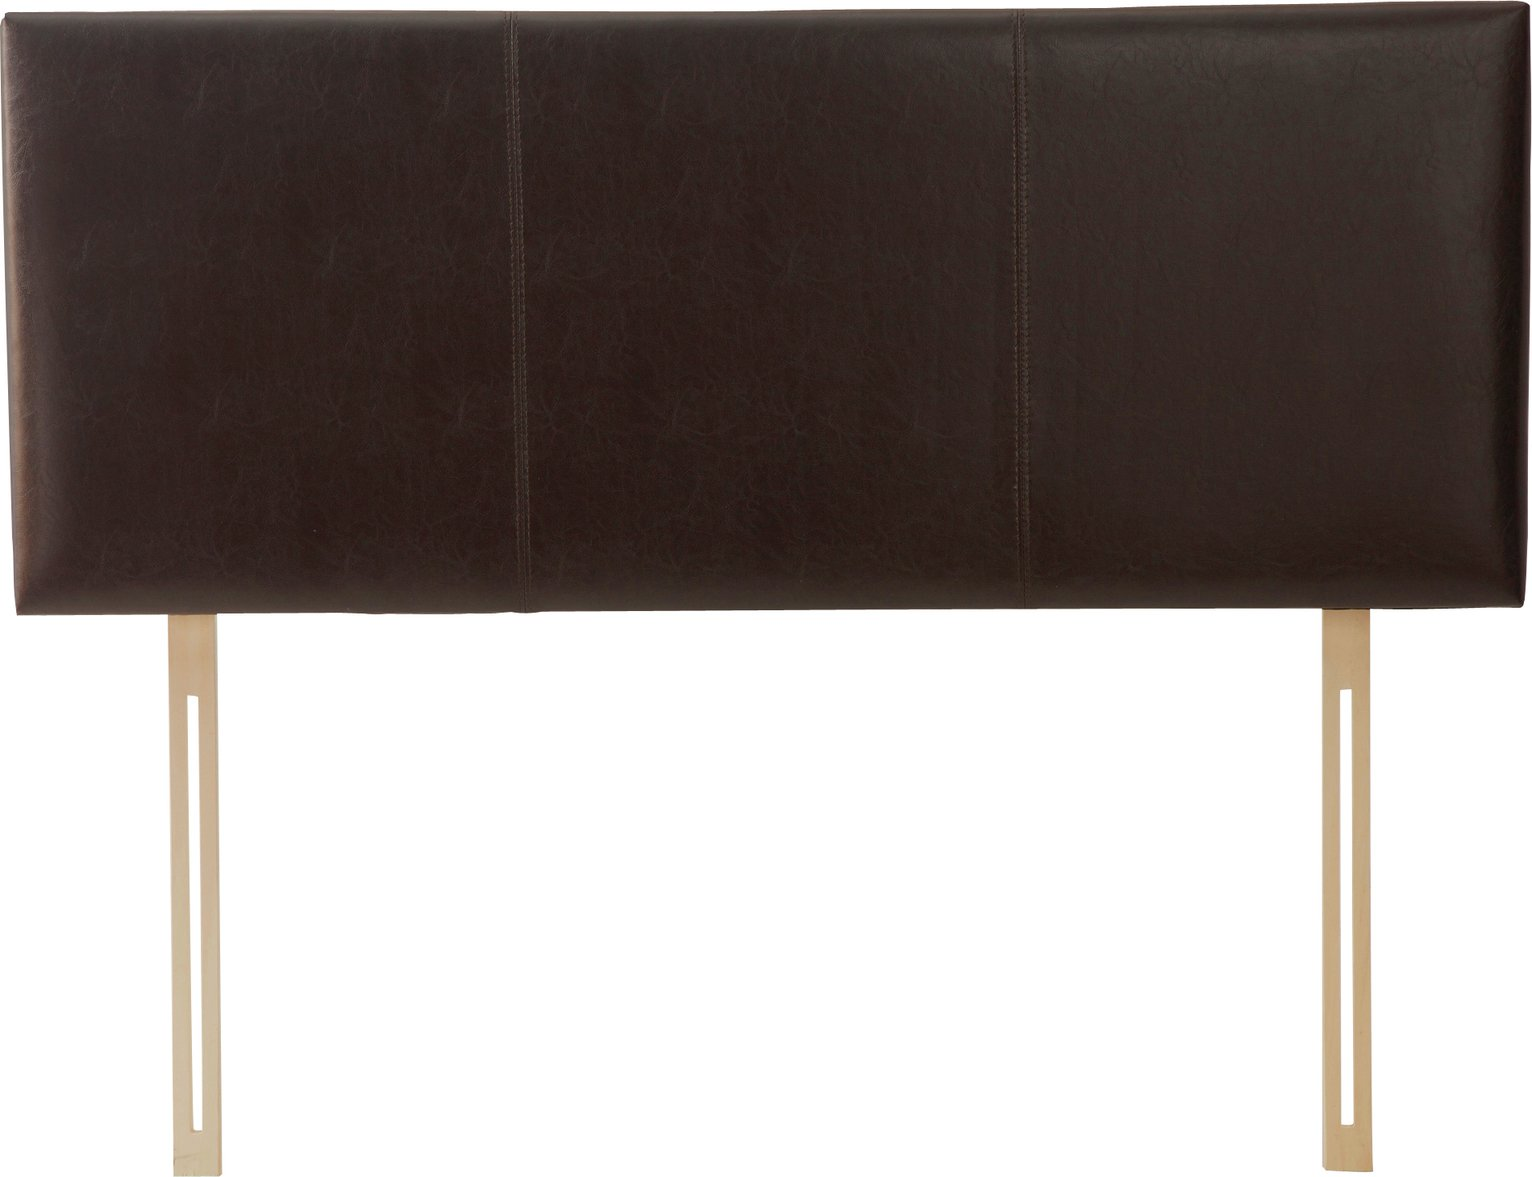 Image of Alex - Double - Headboard - Chocolate Brown